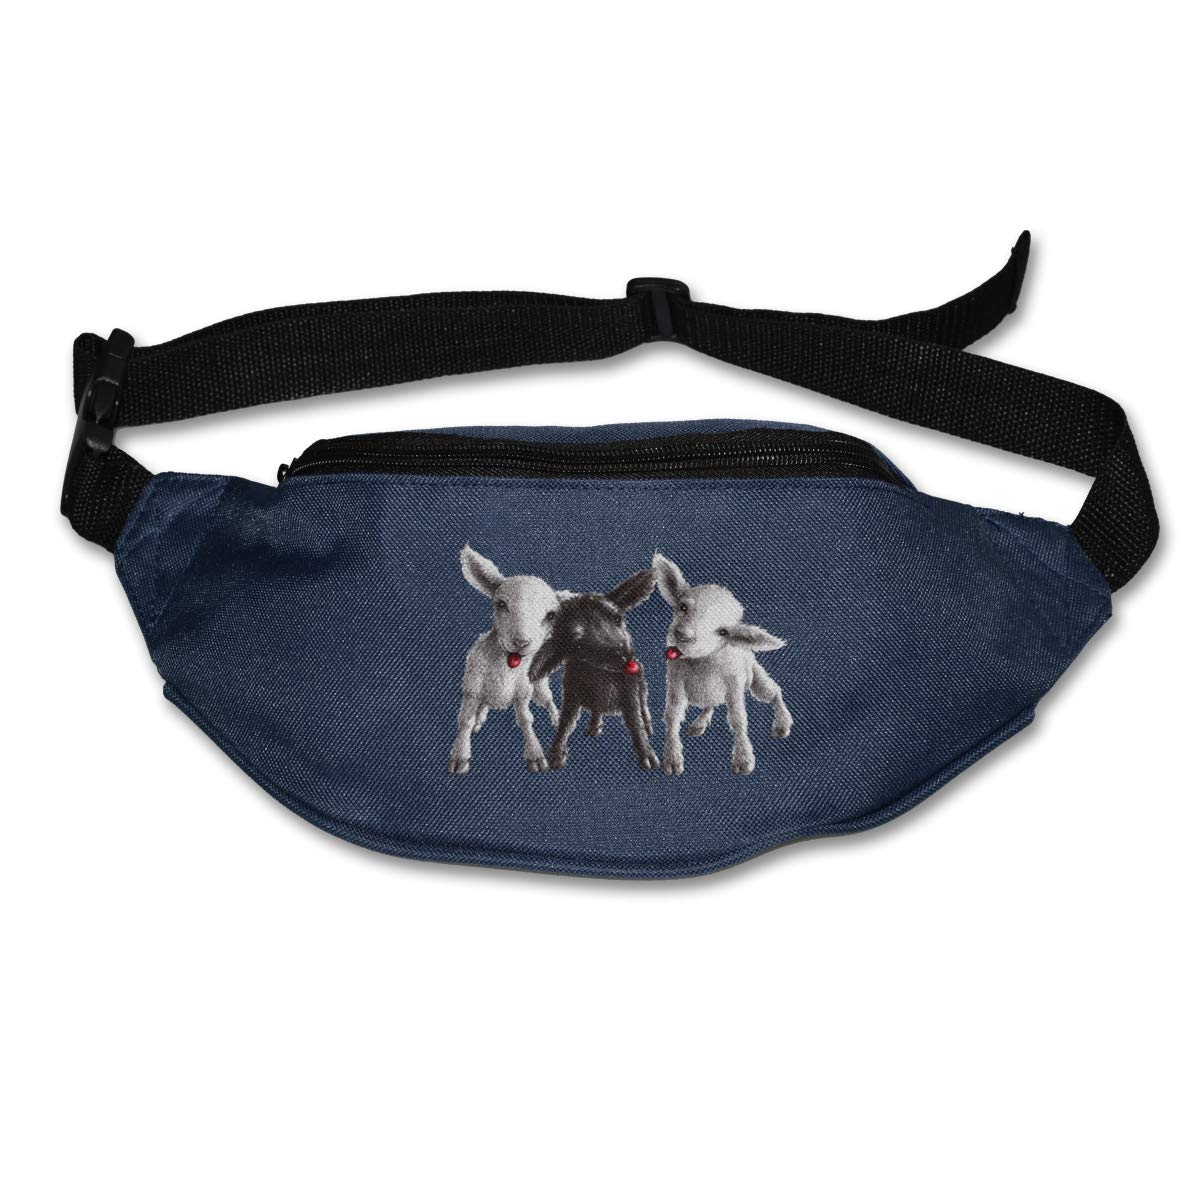 Naughty Goats Sport Waist Packs Fanny Pack Adjustable For Hike